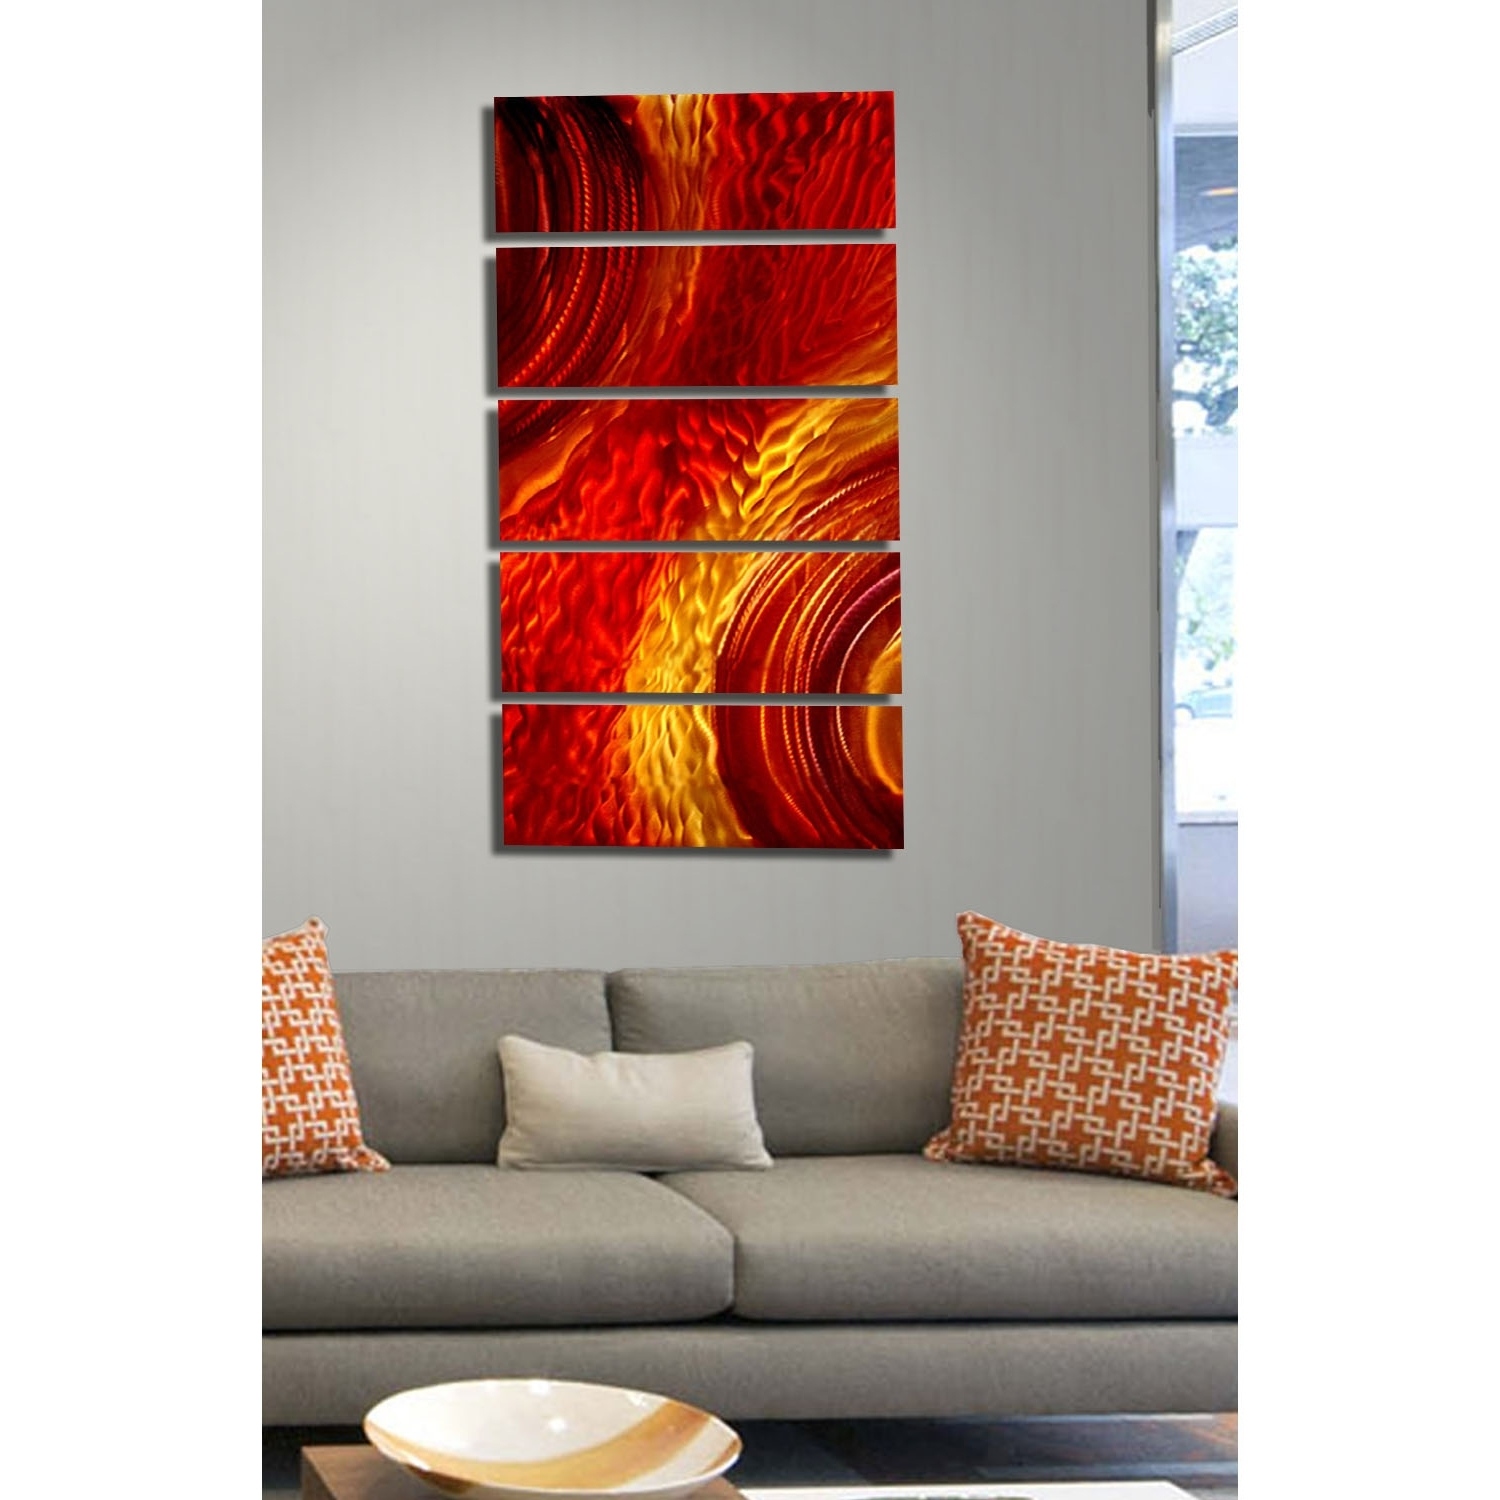 Orange Wall Art Within Latest Magma – Red And Gold Metal Wall Art – 5 Panel Wall Décorjon (View 15 of 20)